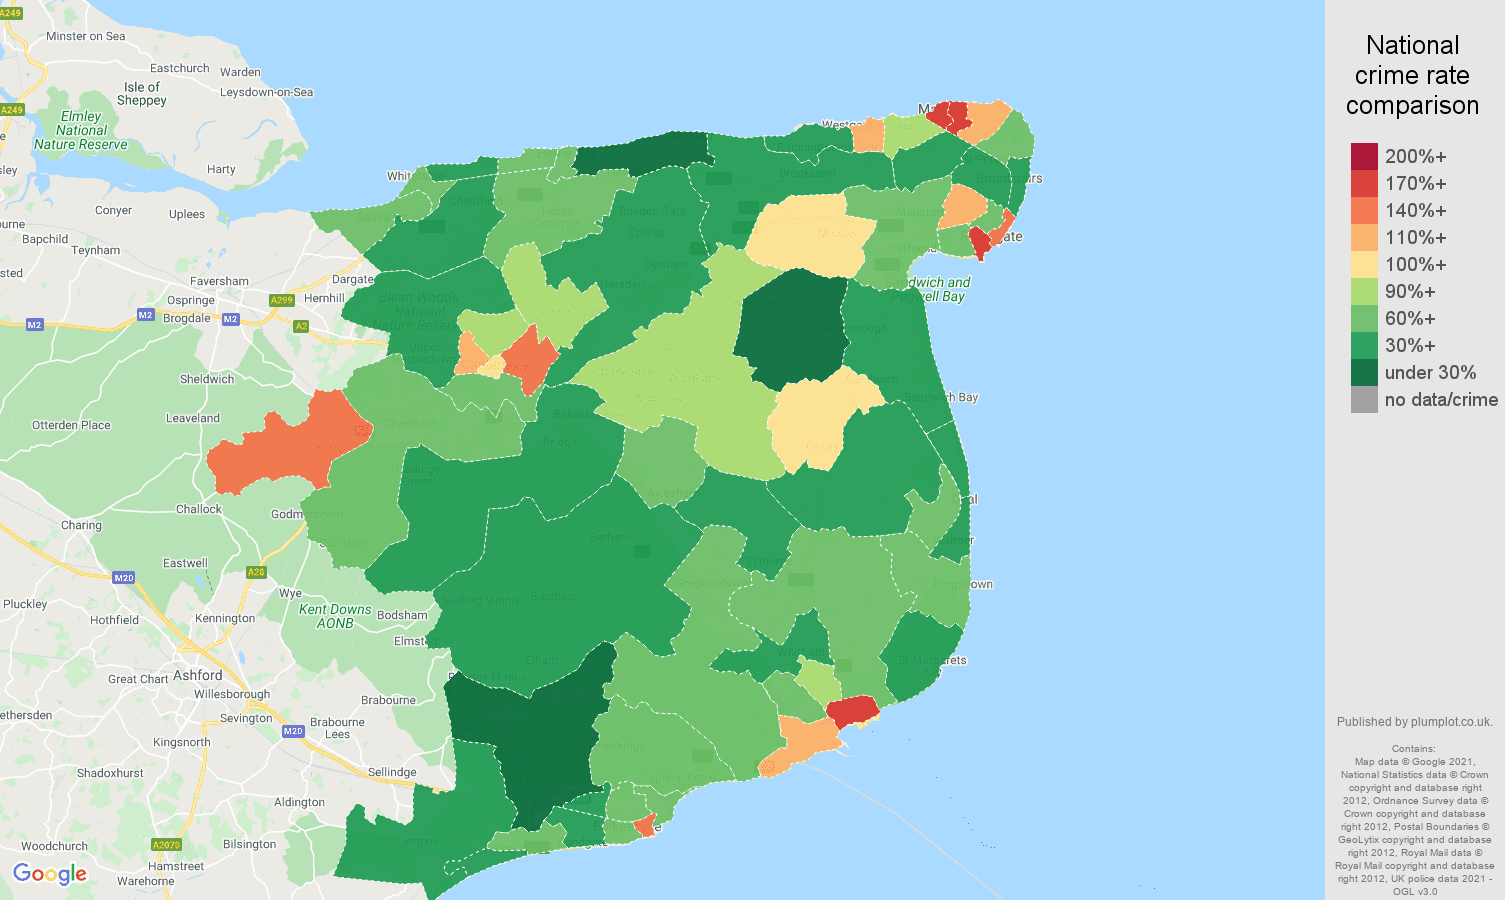 Canterbury burglary crime rate comparison map